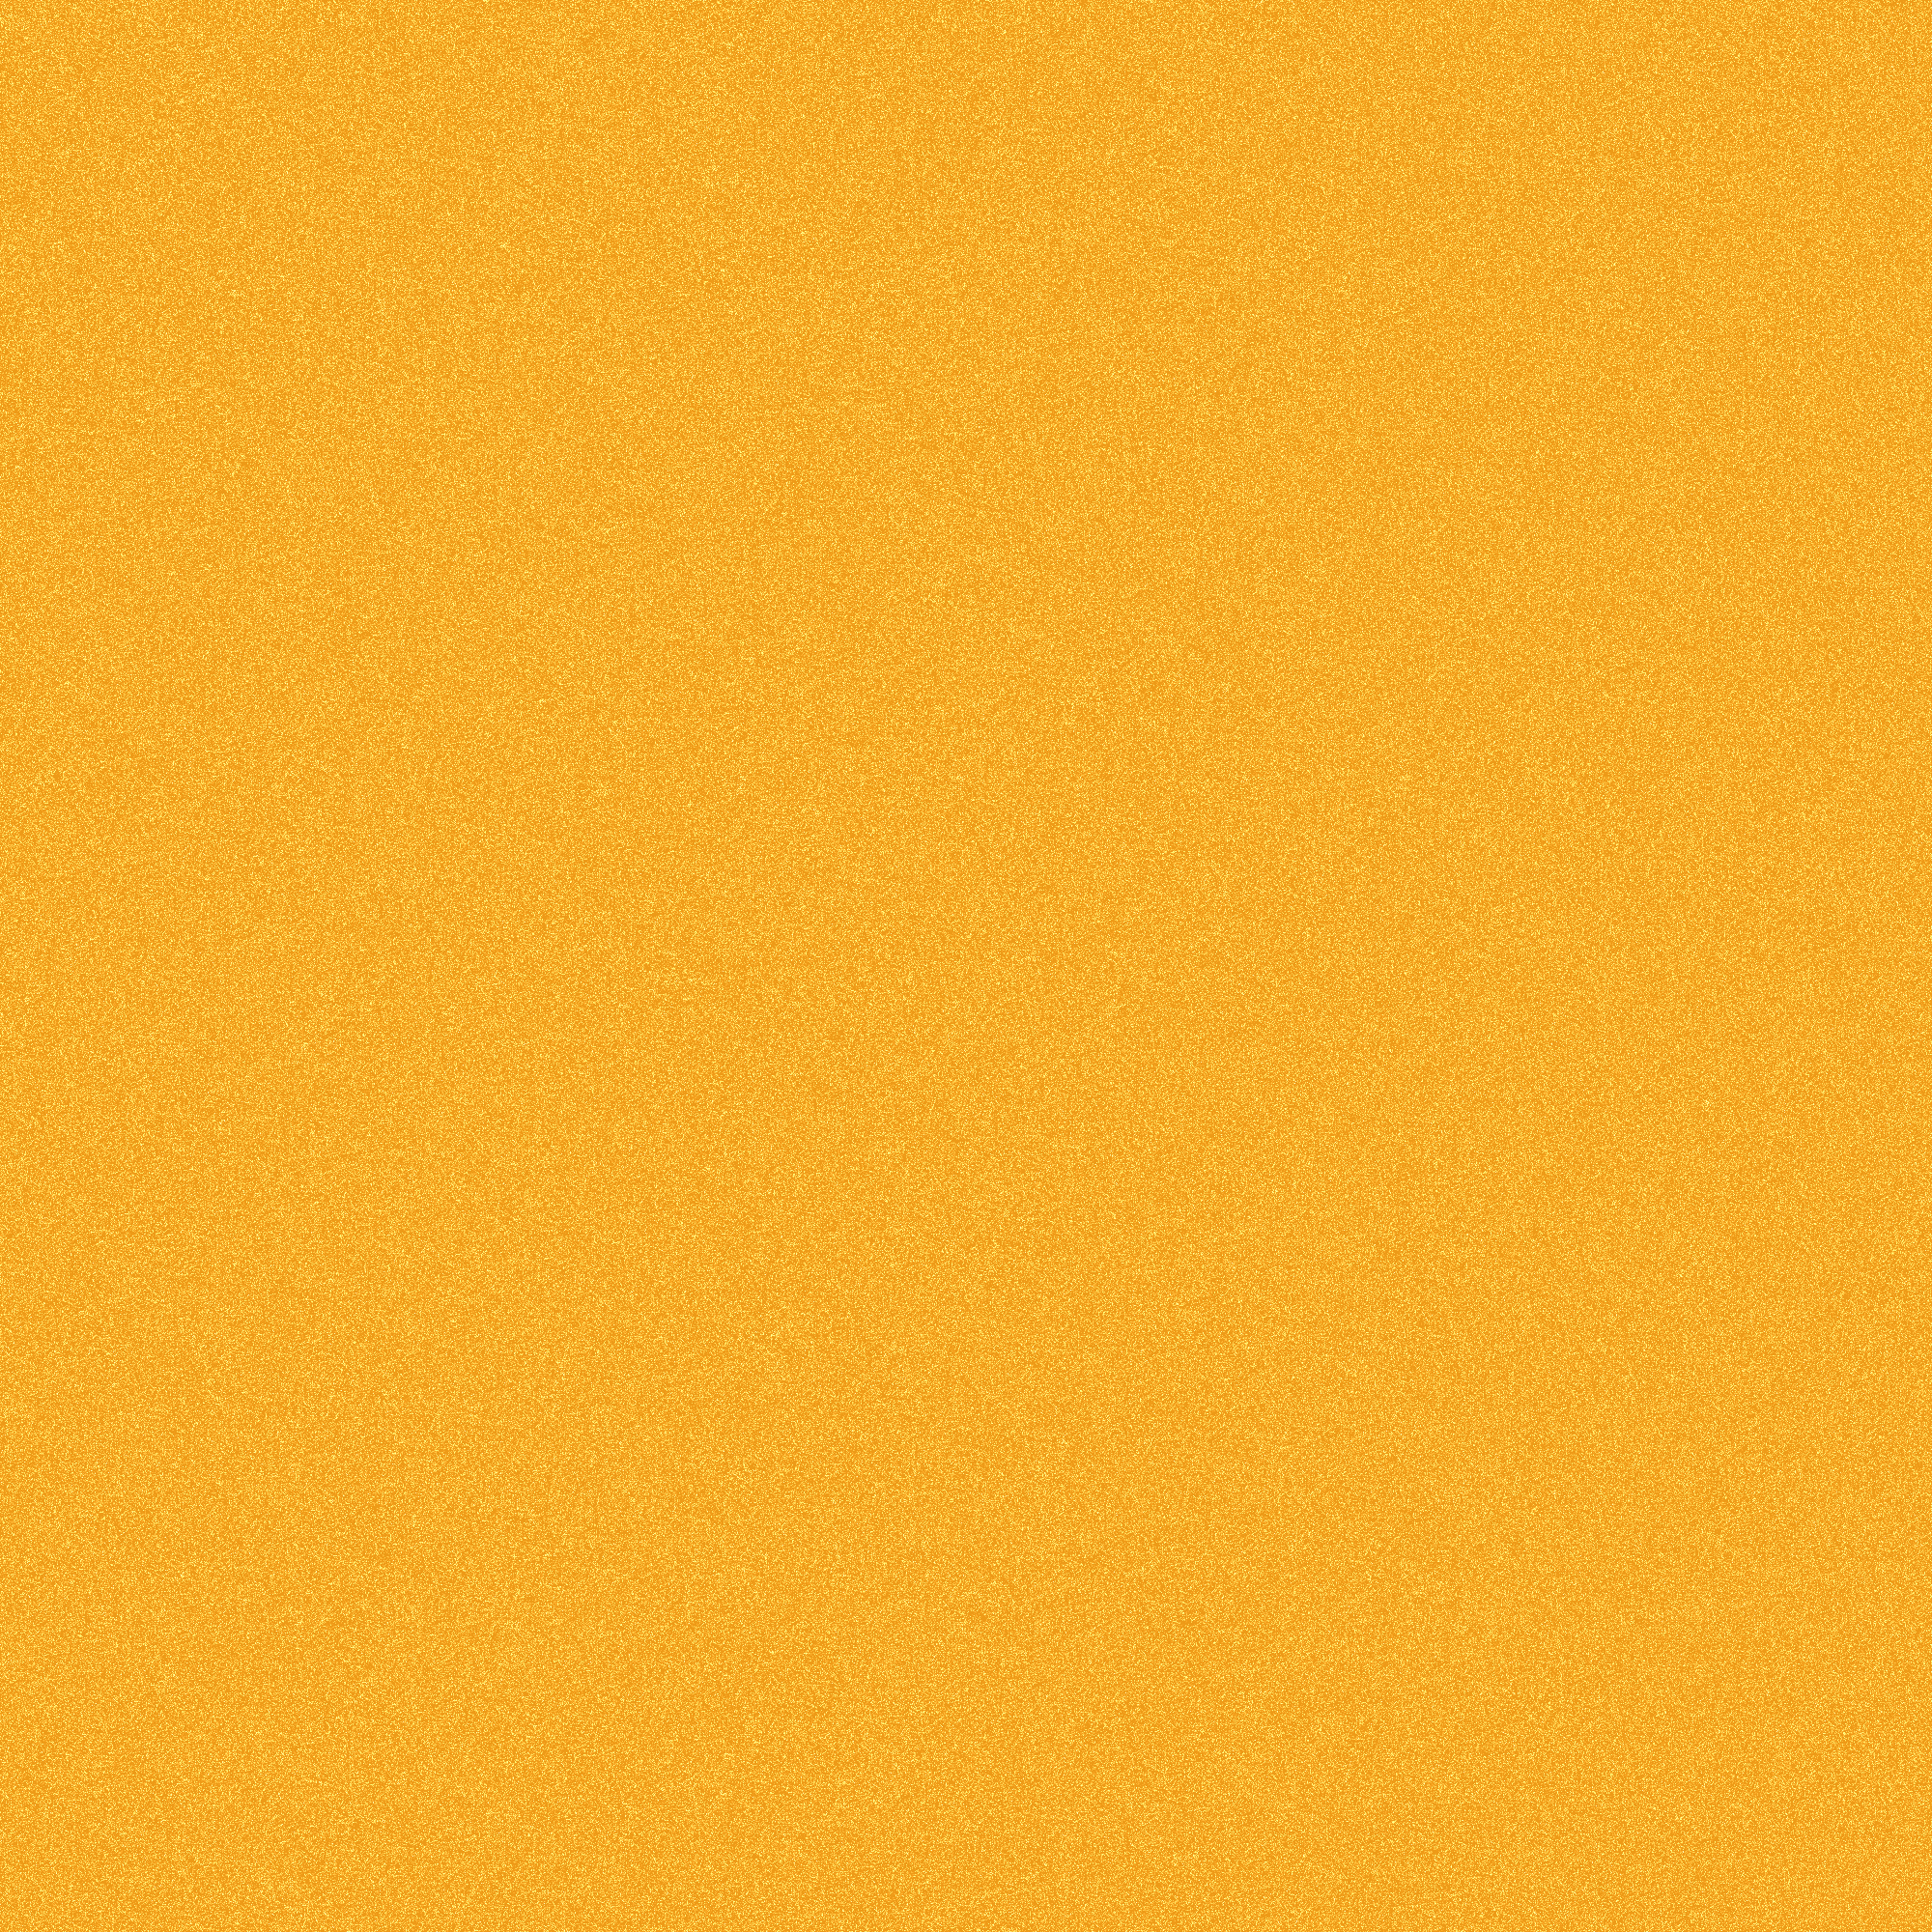 noize_background_yellow